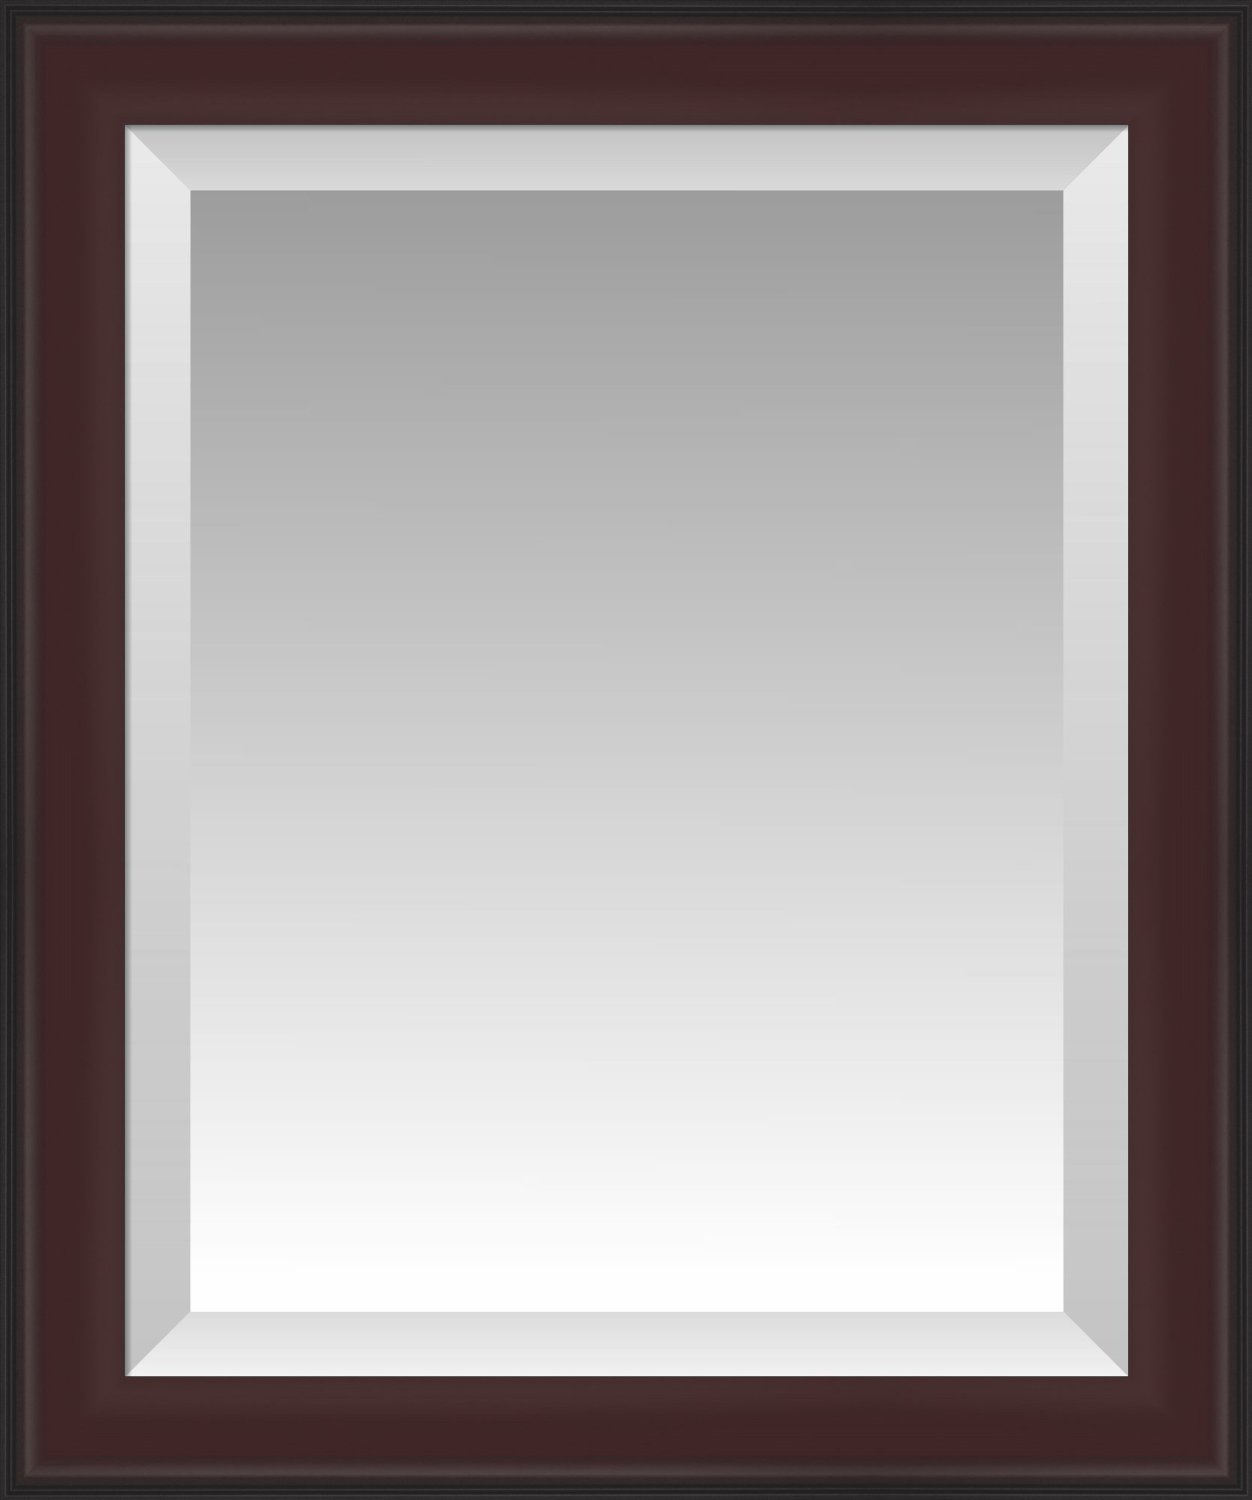 Formal Dark Cherry with Black Outer Edge Beveled Wall Mirror, Size 23.5 X 27.5